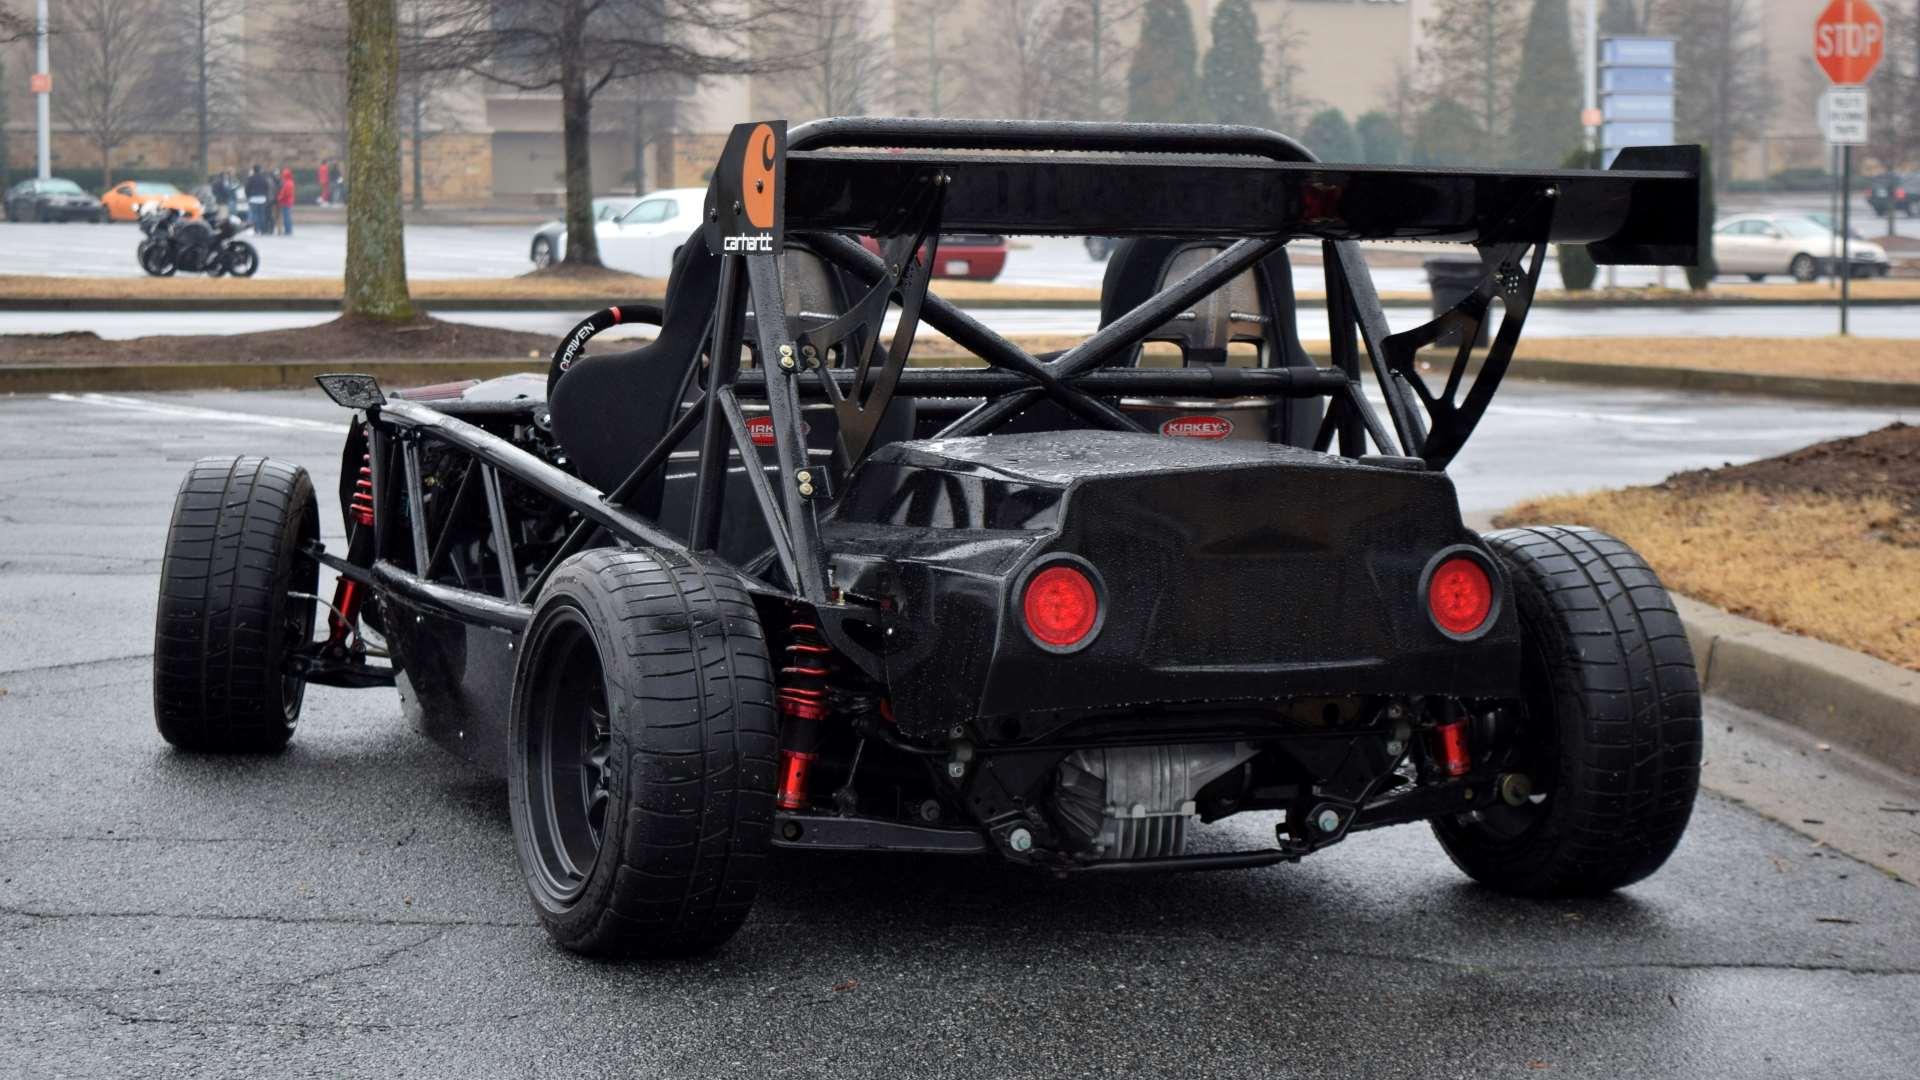 Kit Car by Exomotive Exocet | Build and Ride | ToysForBigBoys.com